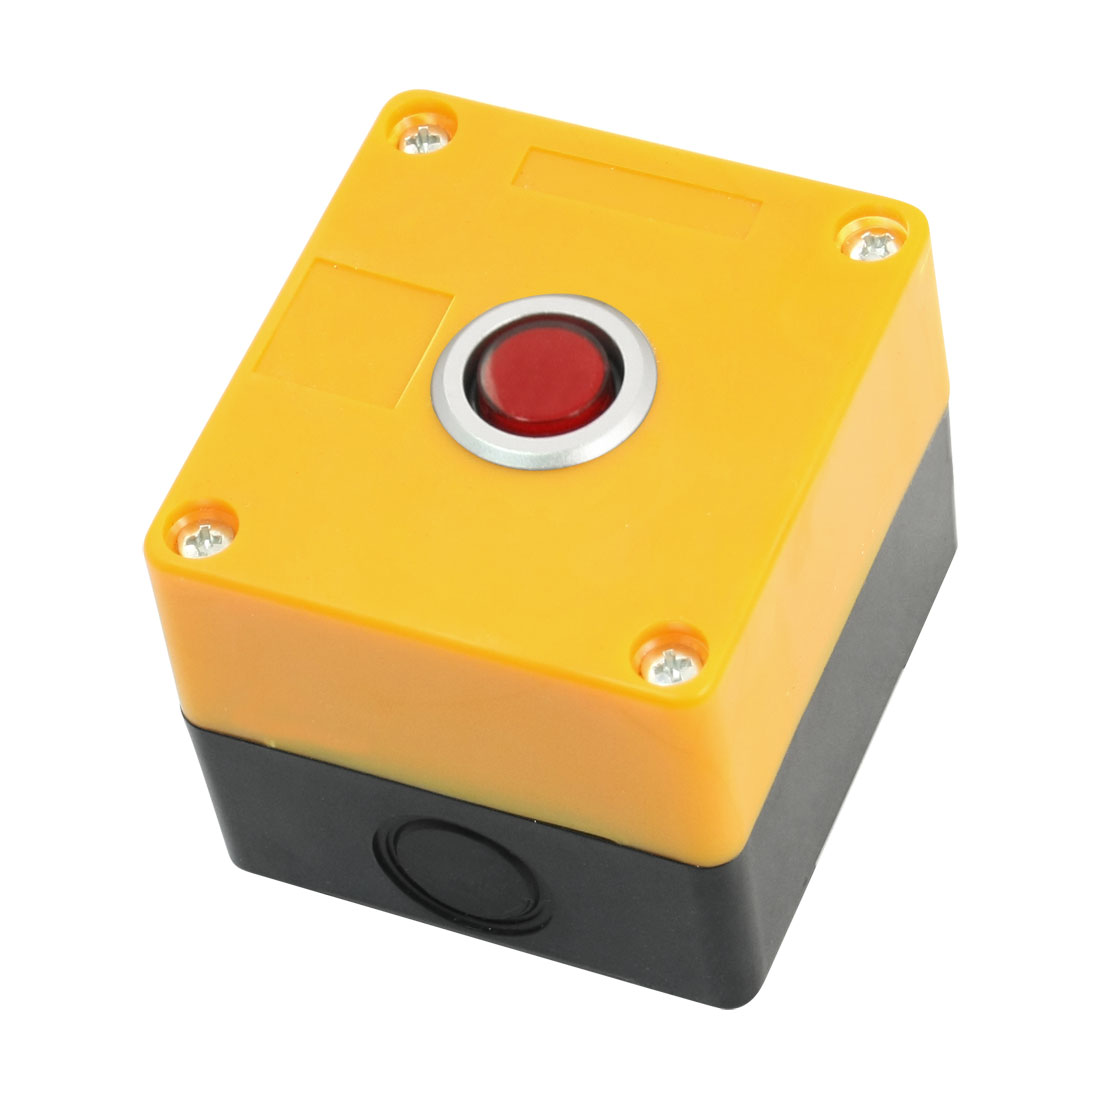 AC220V 5A Red Lamp SPDT 5Pin 1NO 1NC Self-Locking Rectangle Yellow Plastic Case Push Button Station Switch Control Box